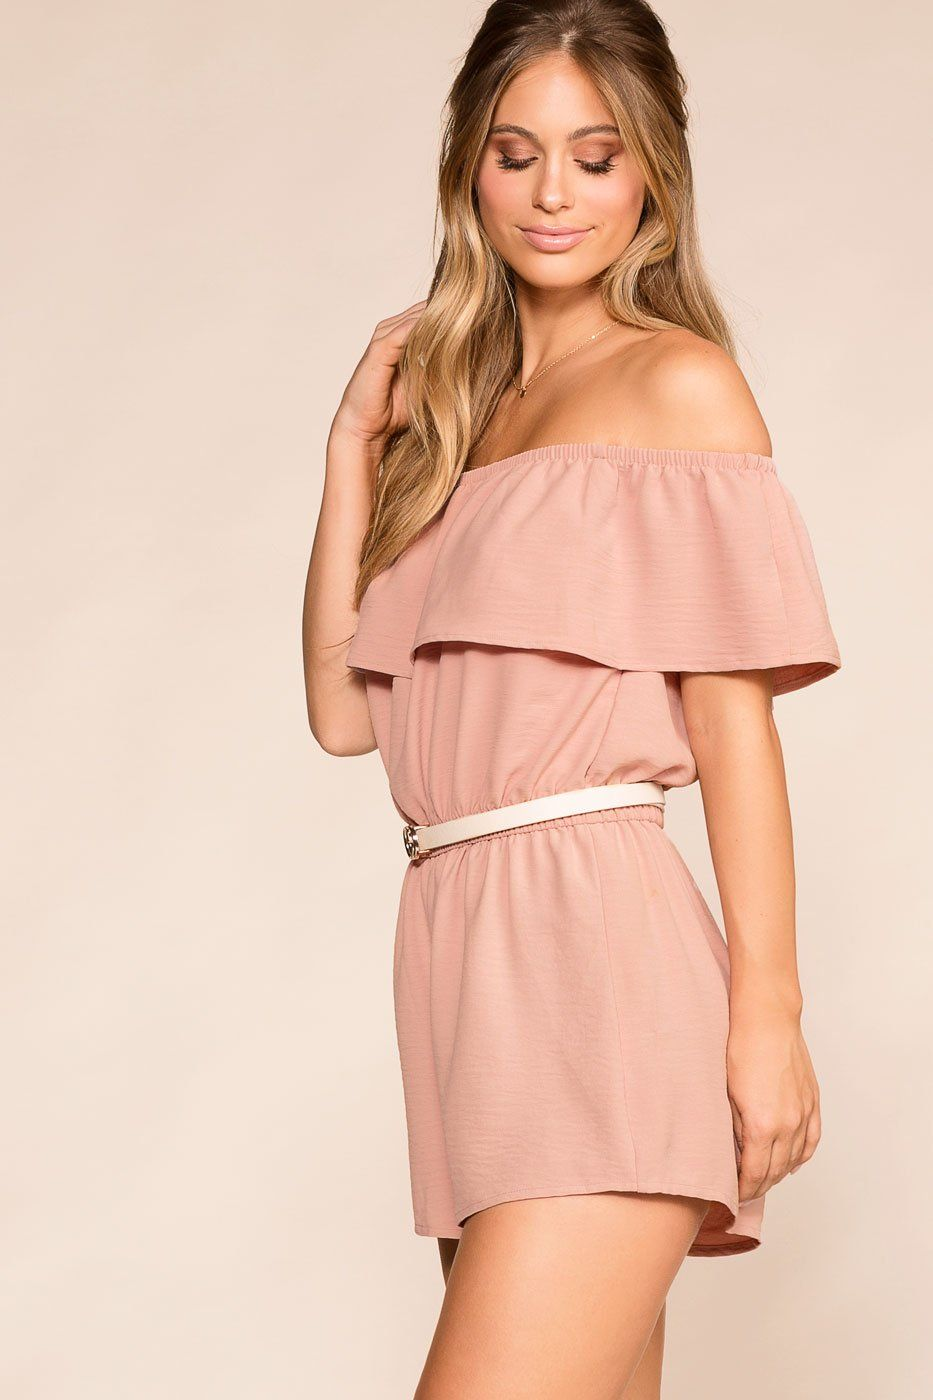 Dream Life Blush Off The Shoulder Romper | Shop Iris Basic